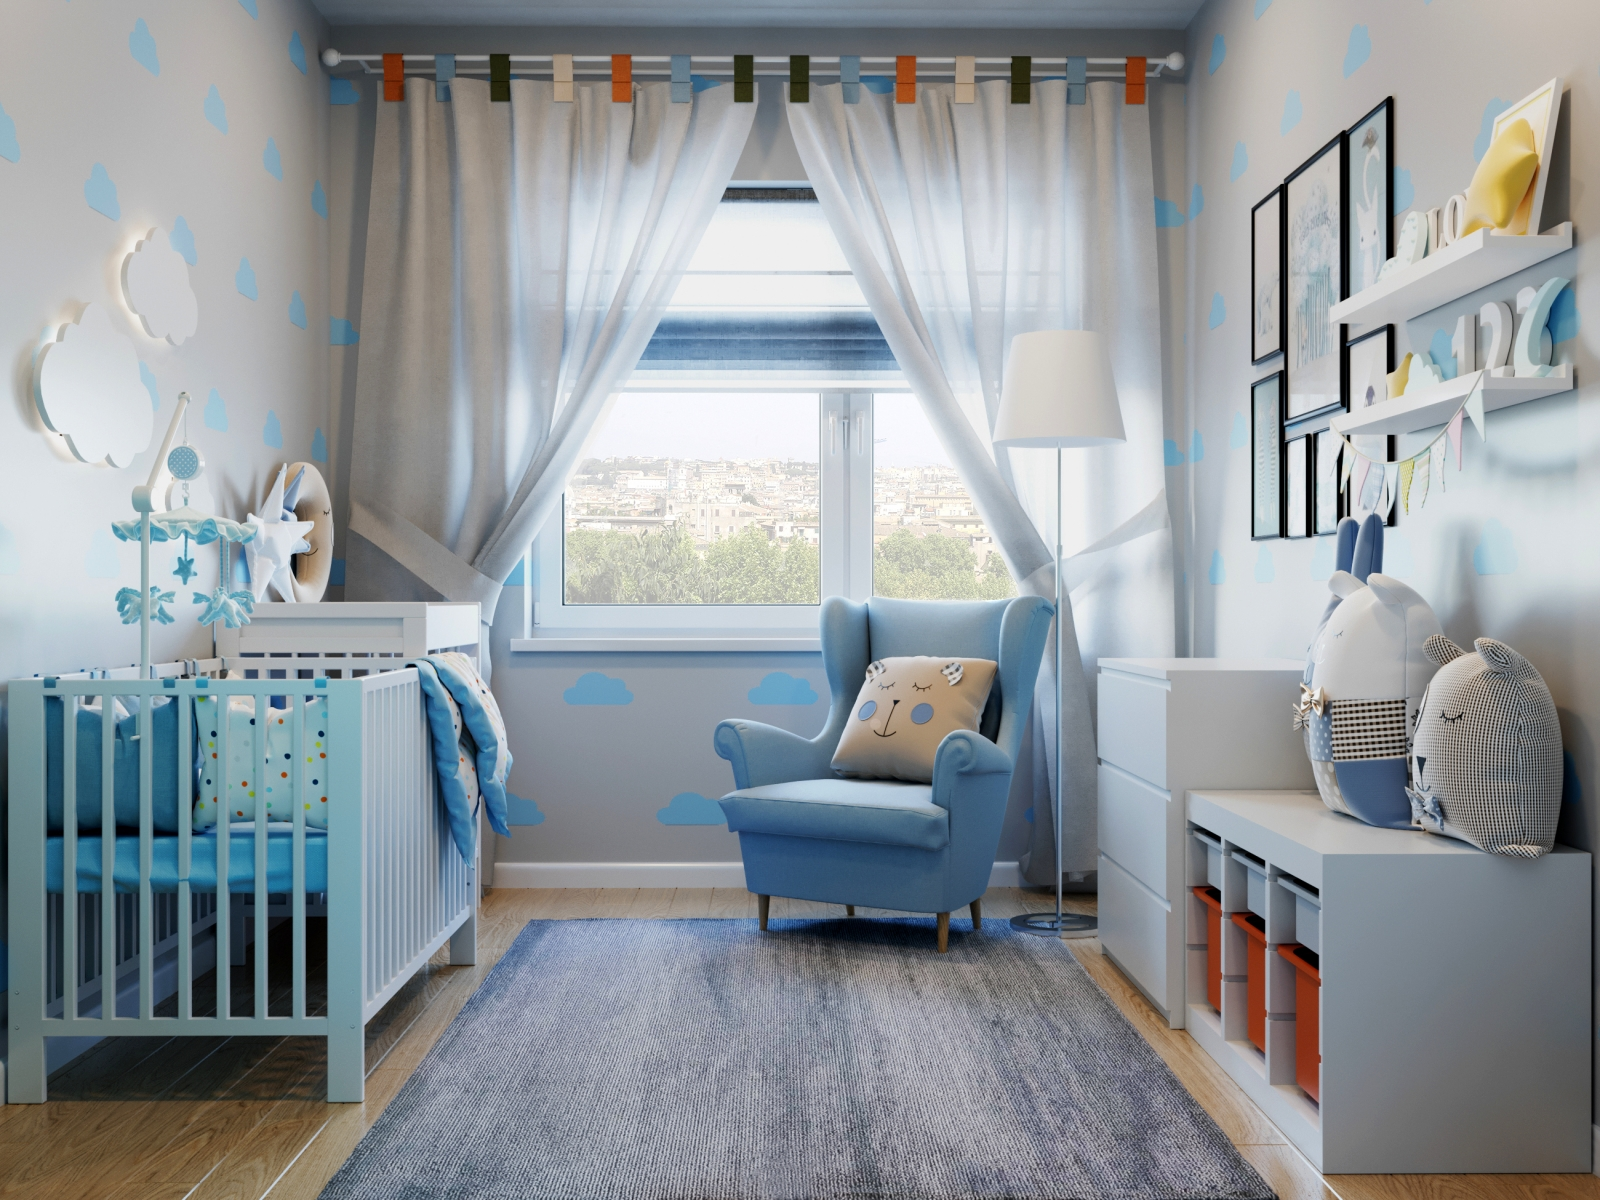 Visualization of a Children's Room